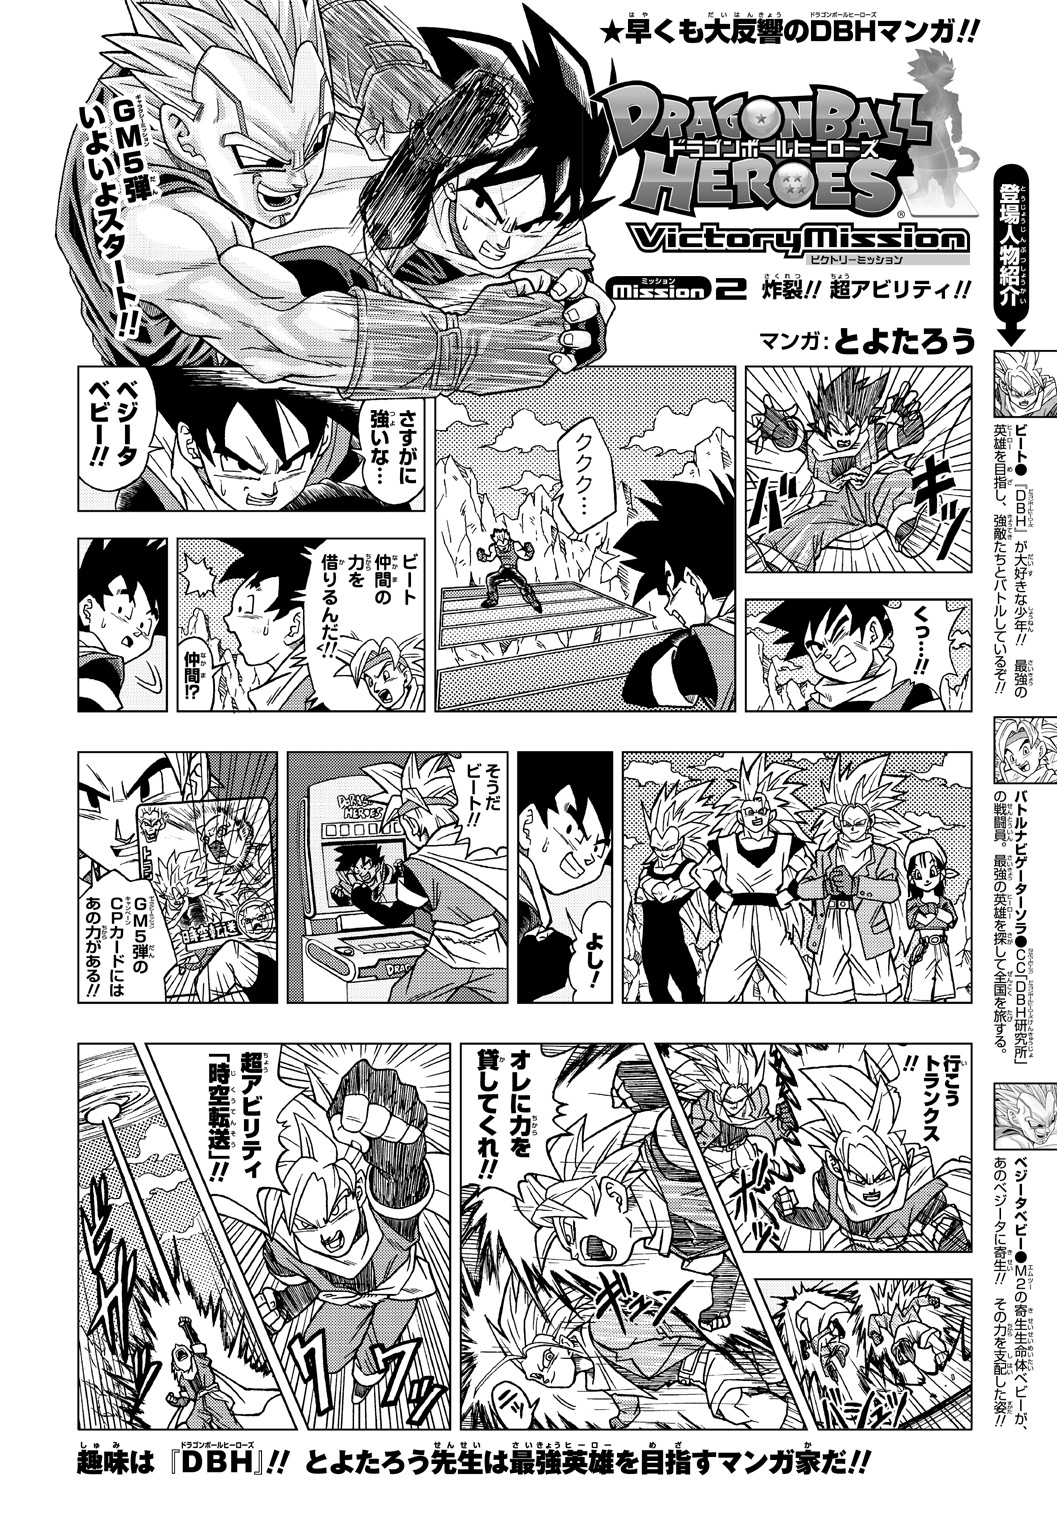 Dragon Ball Heroes Victory Mission Chapitre 002